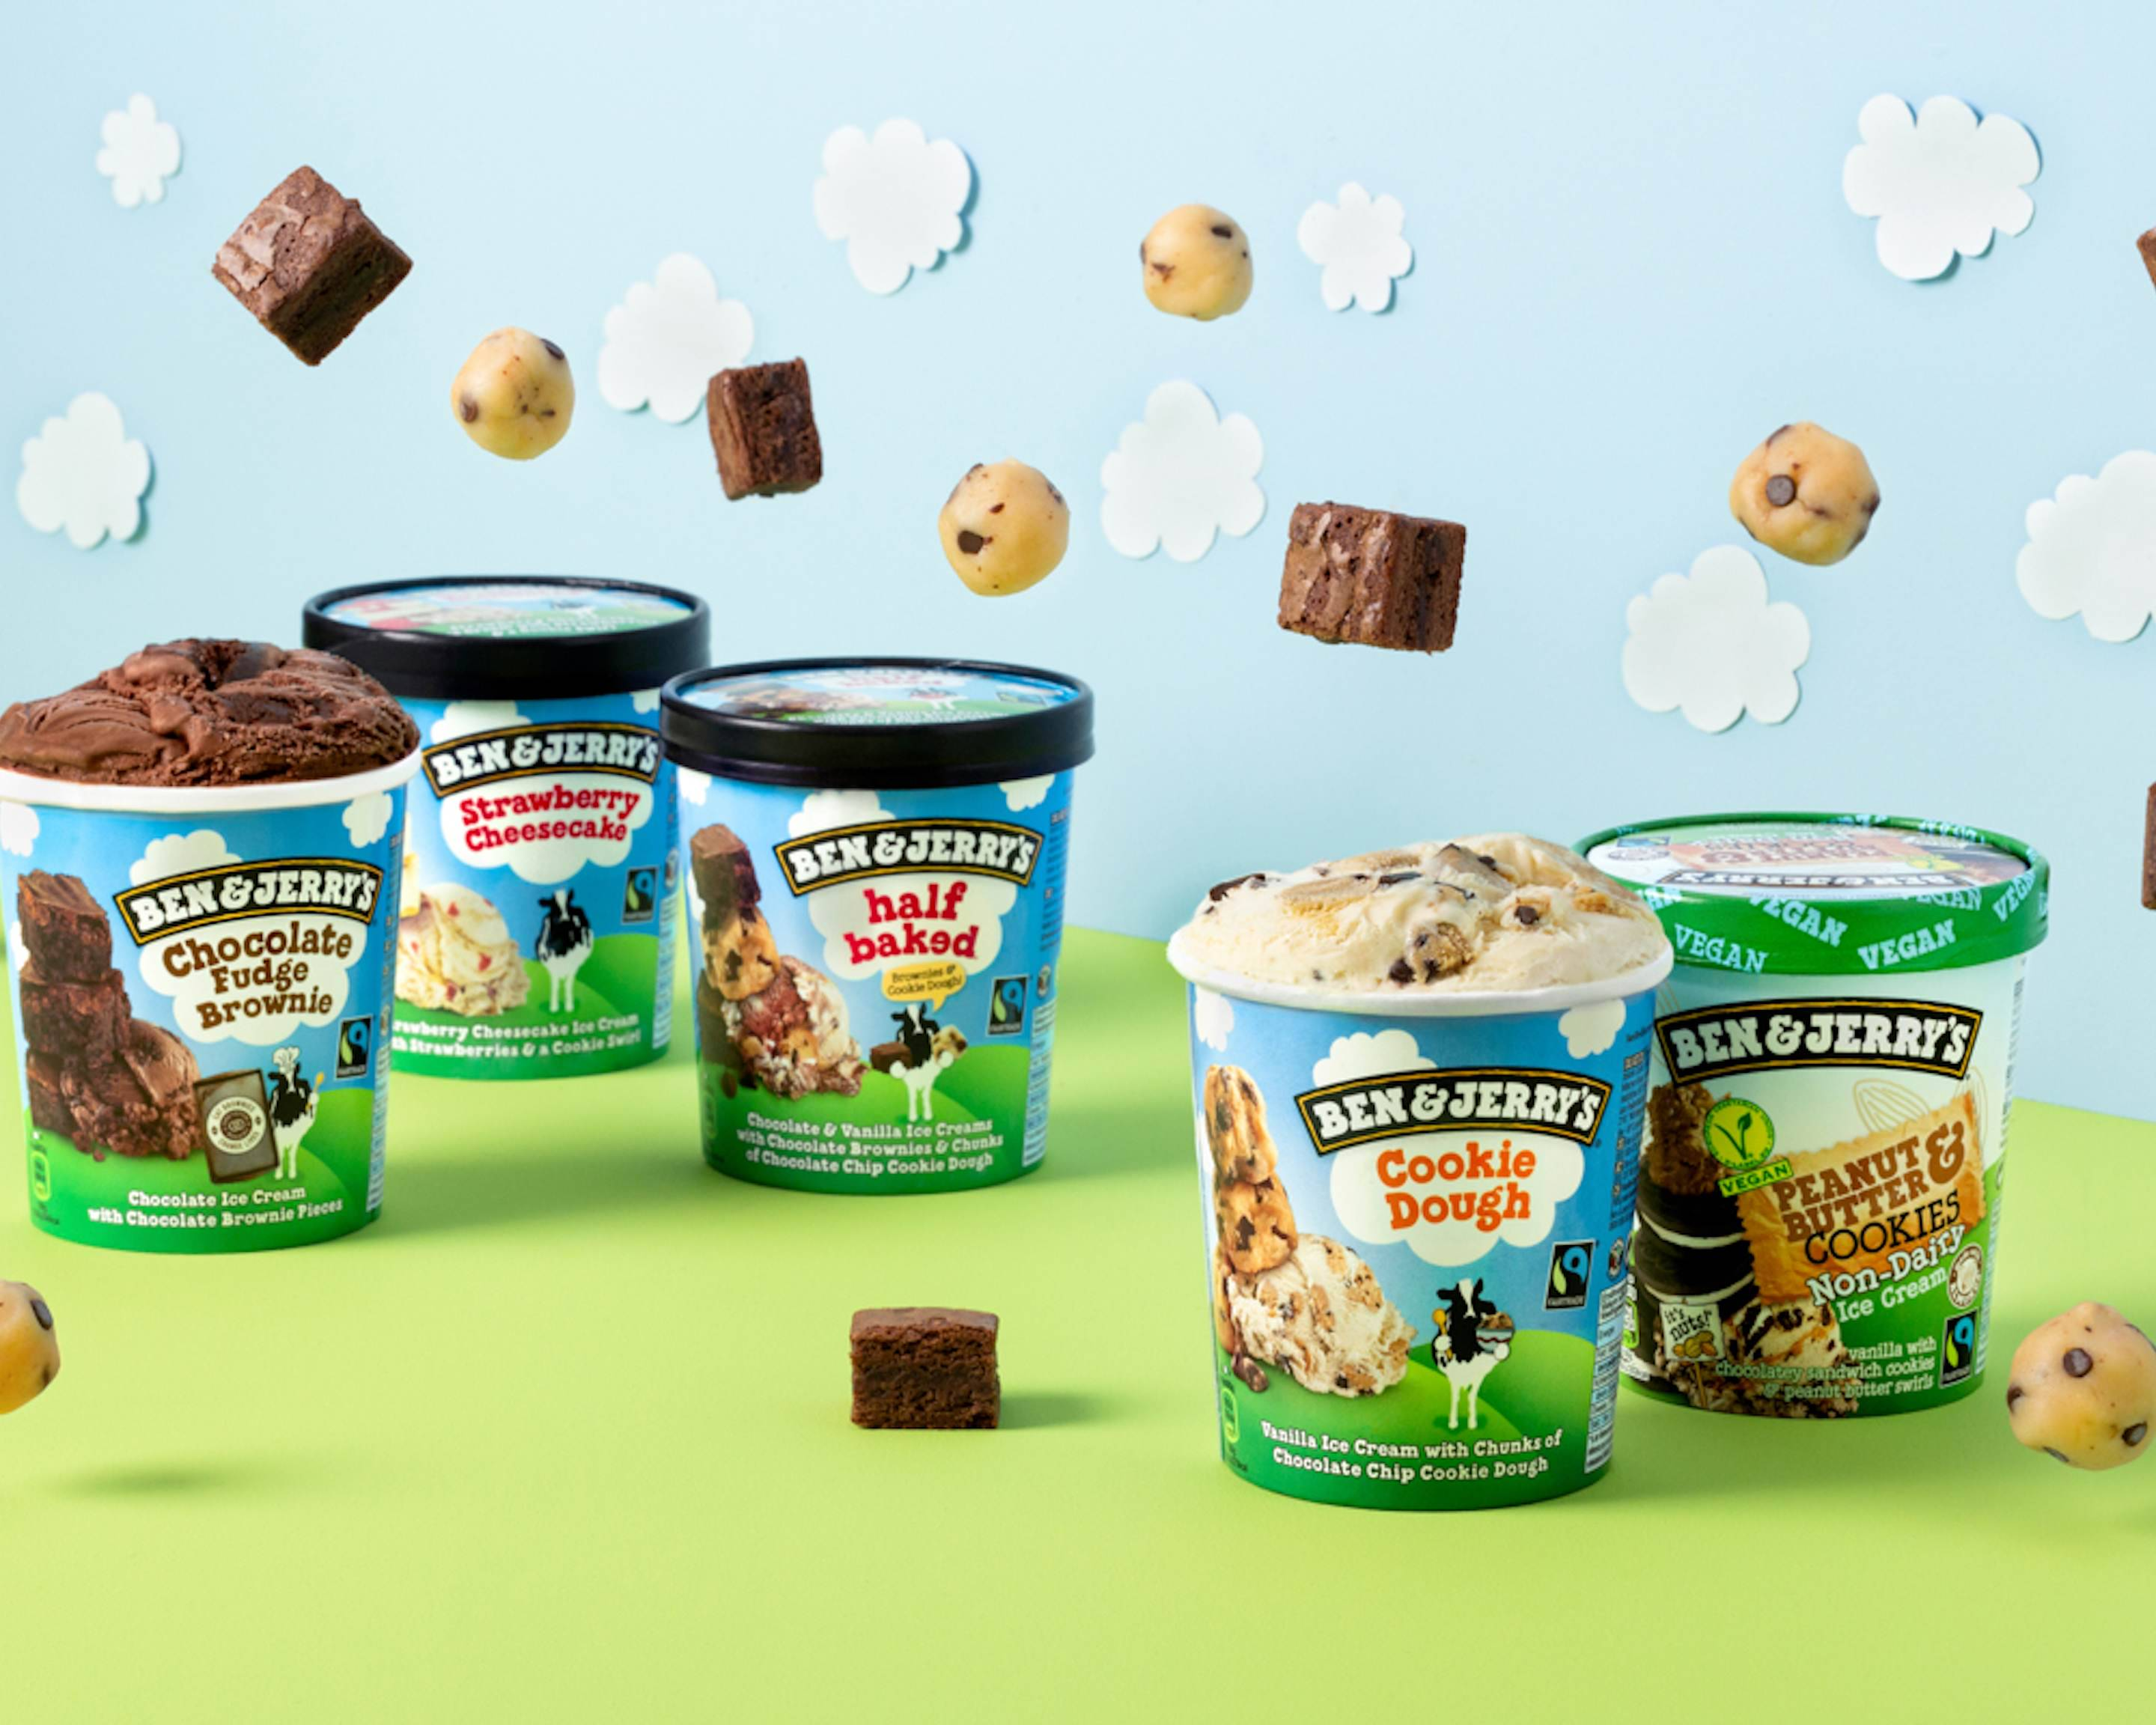 Ben & Jerry's Store (Sutton) Takeaway in London | Delivery Menu & Prices |  Uber Eats